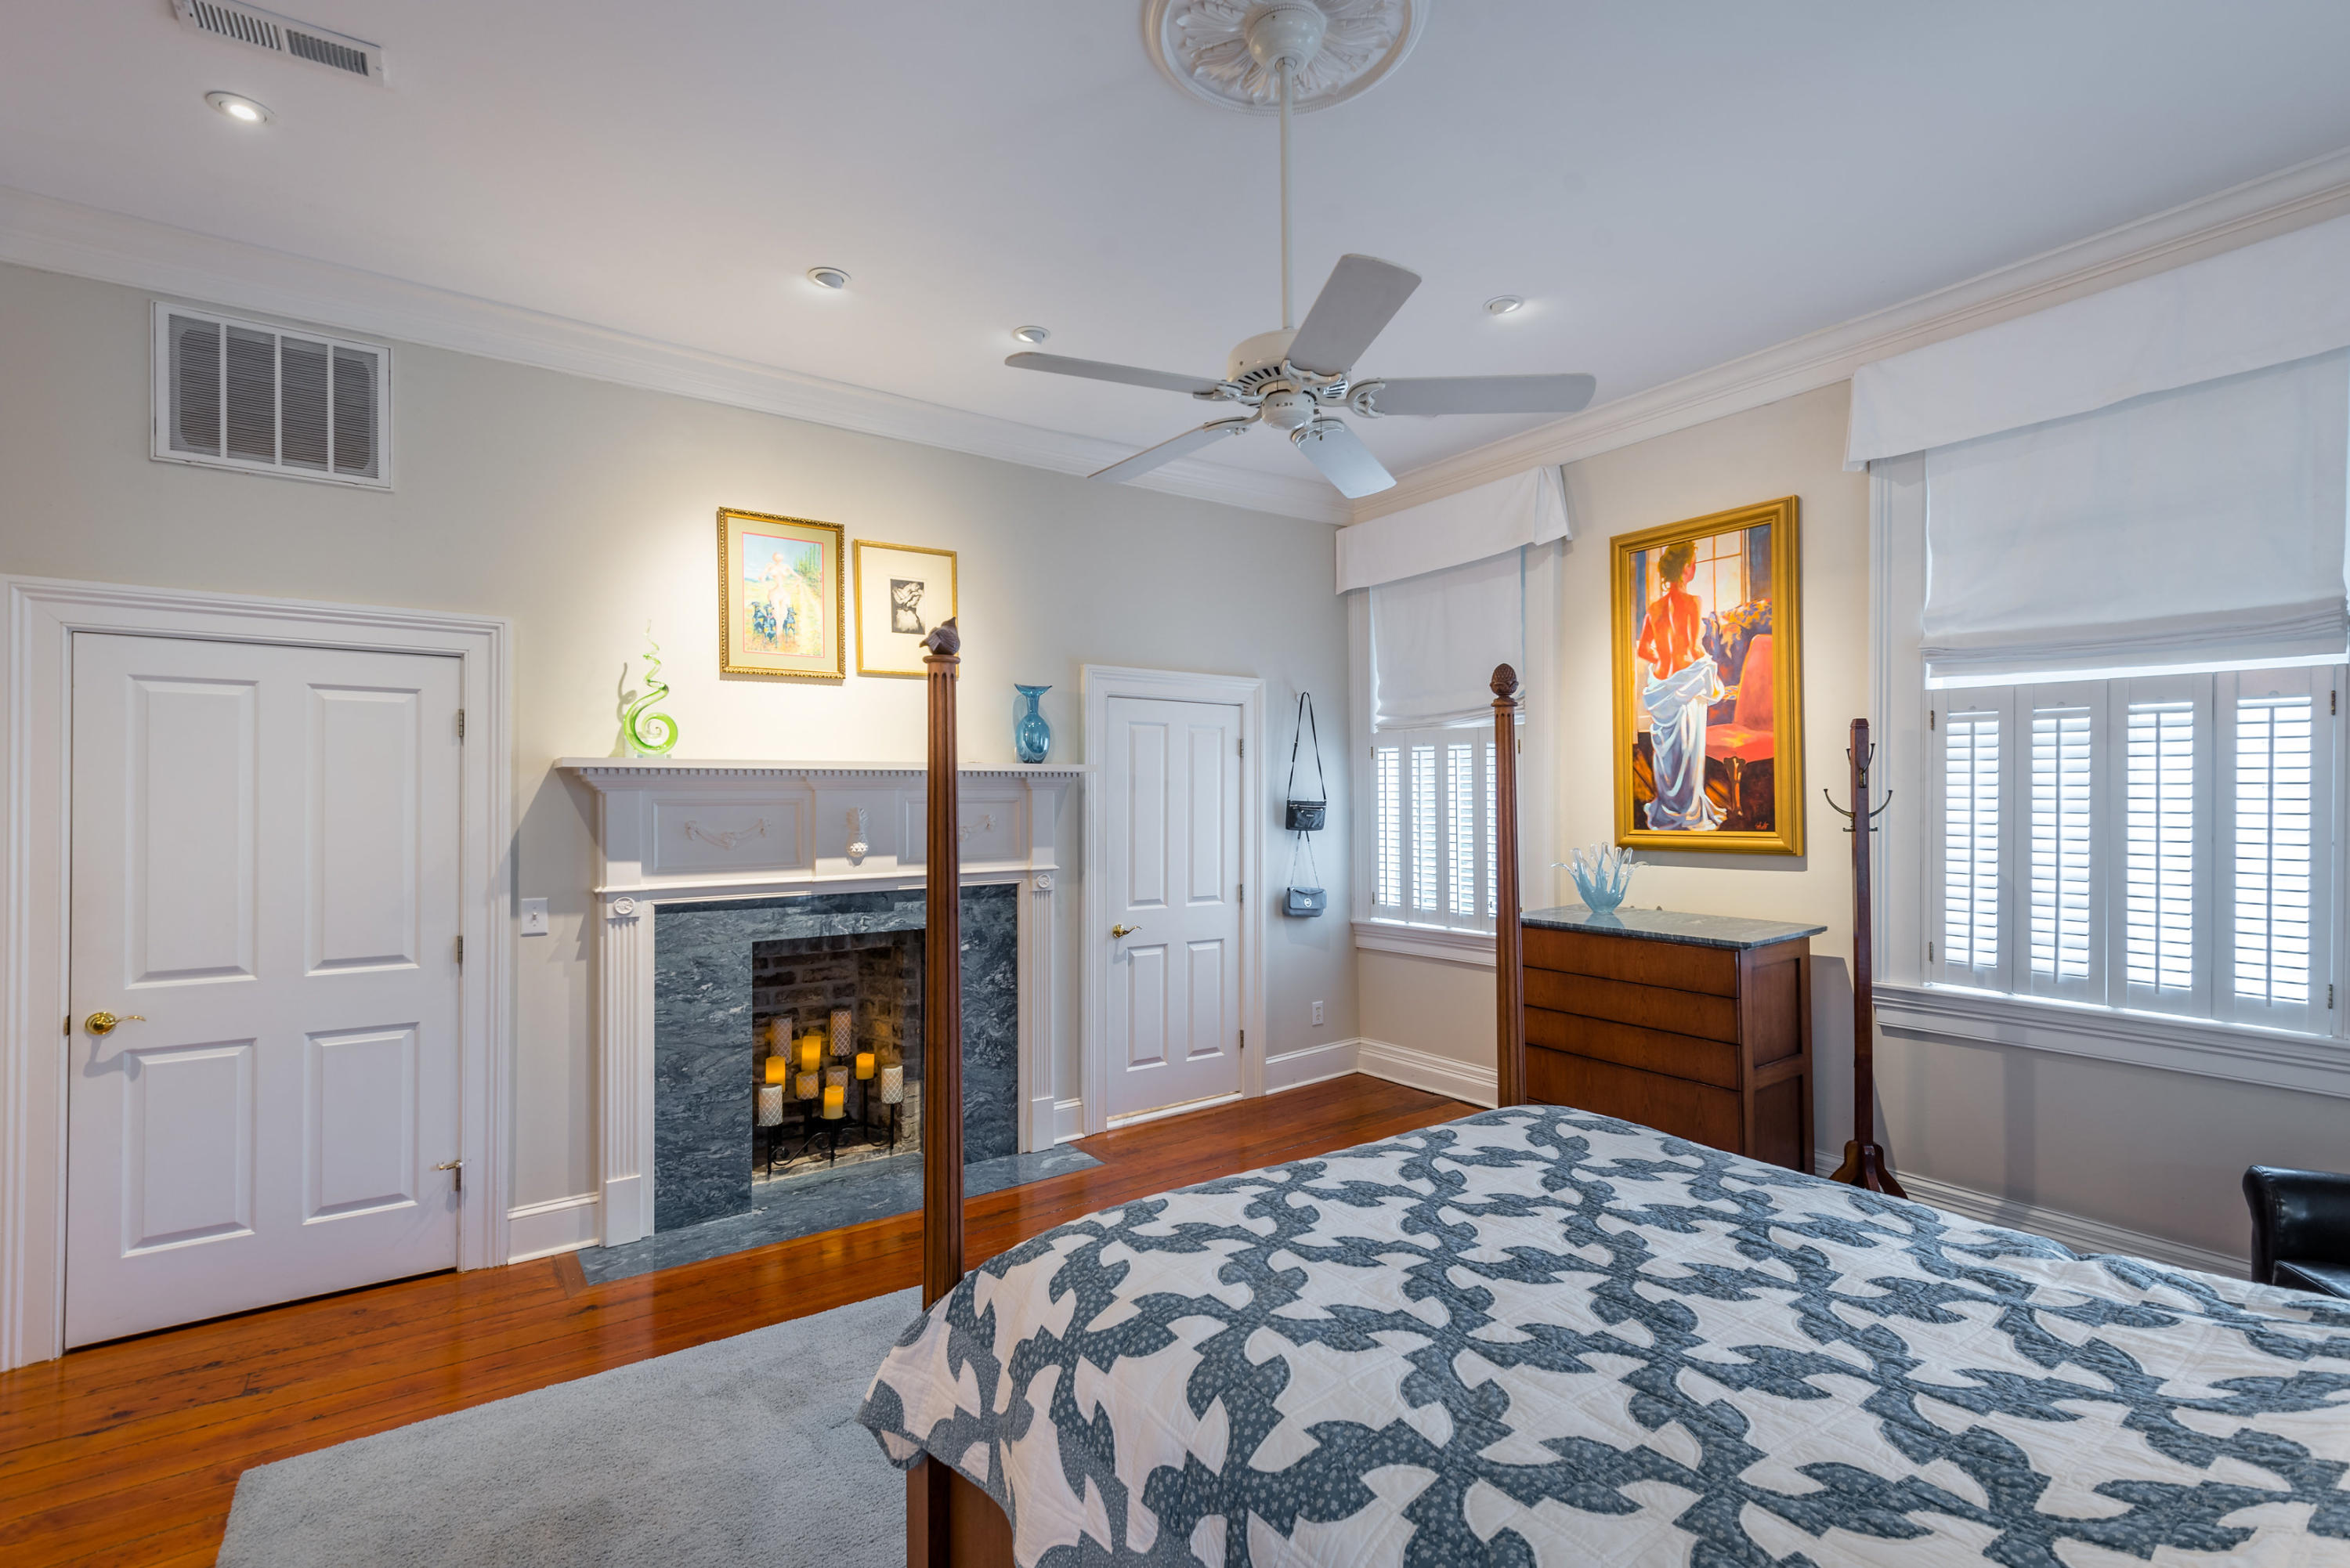 Home for sale 180 Broad Street, Harleston Village, Downtown Charleston, SC